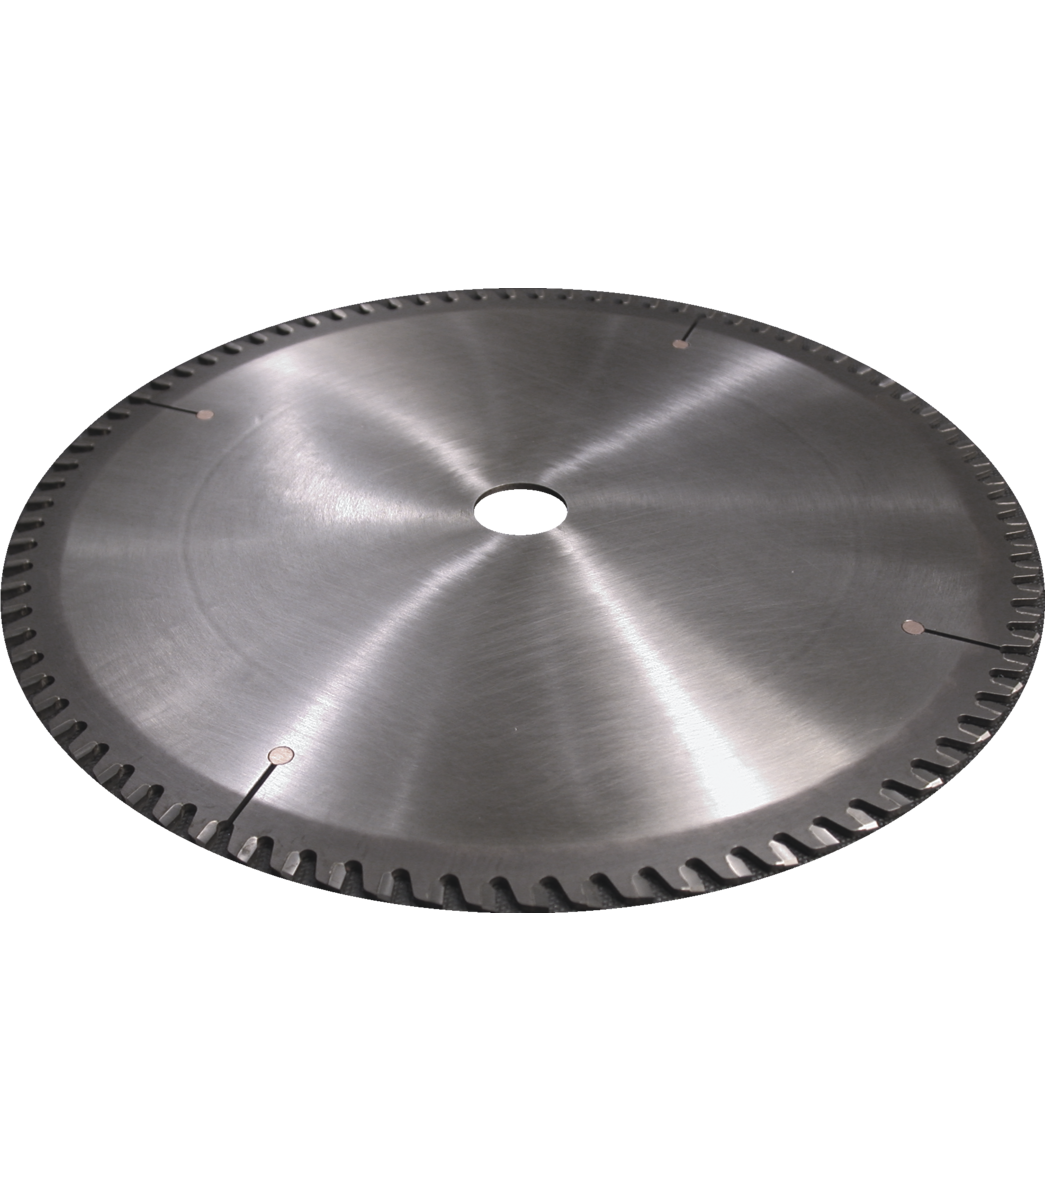 Ferrous Circular Saw Blade 350mm x 32mm x 2.5mm x 220T For J-FK350-2/4K